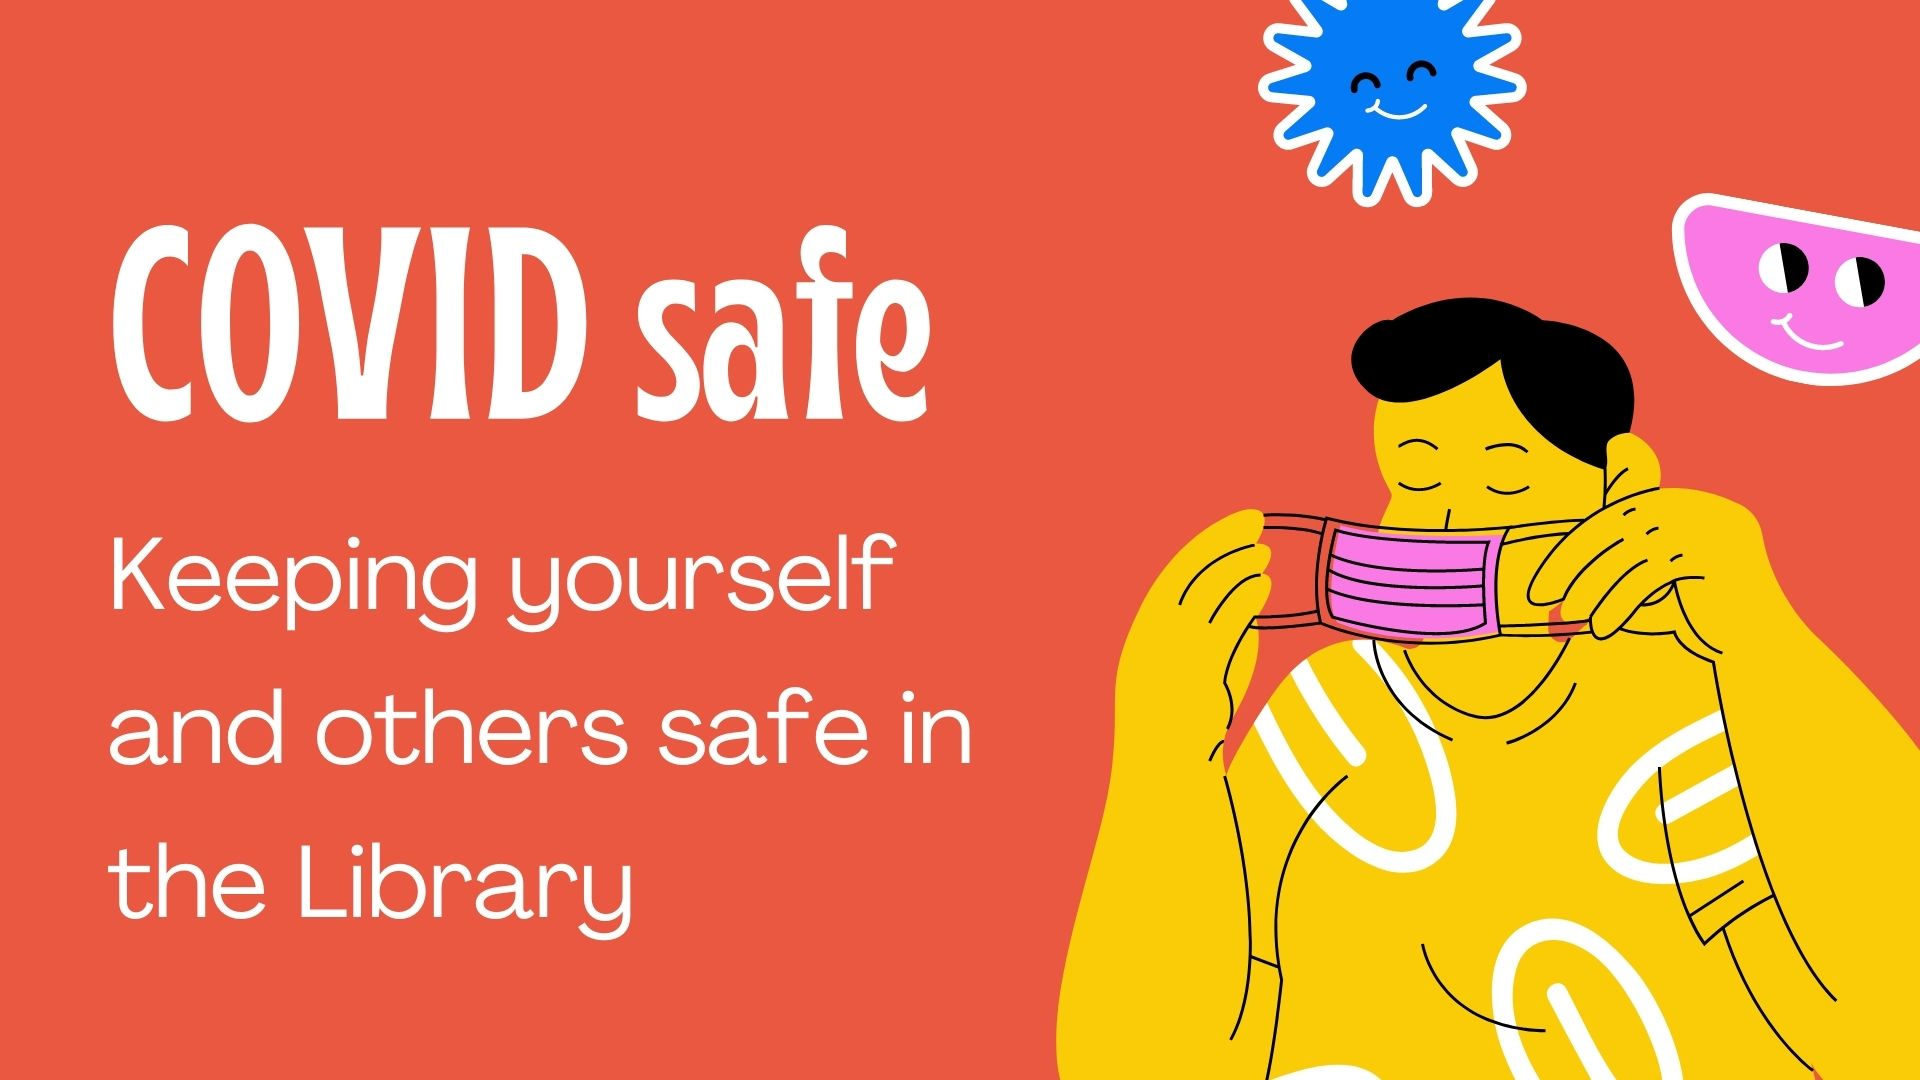 COVID Safe: Keeping yourself and others safe in the Library